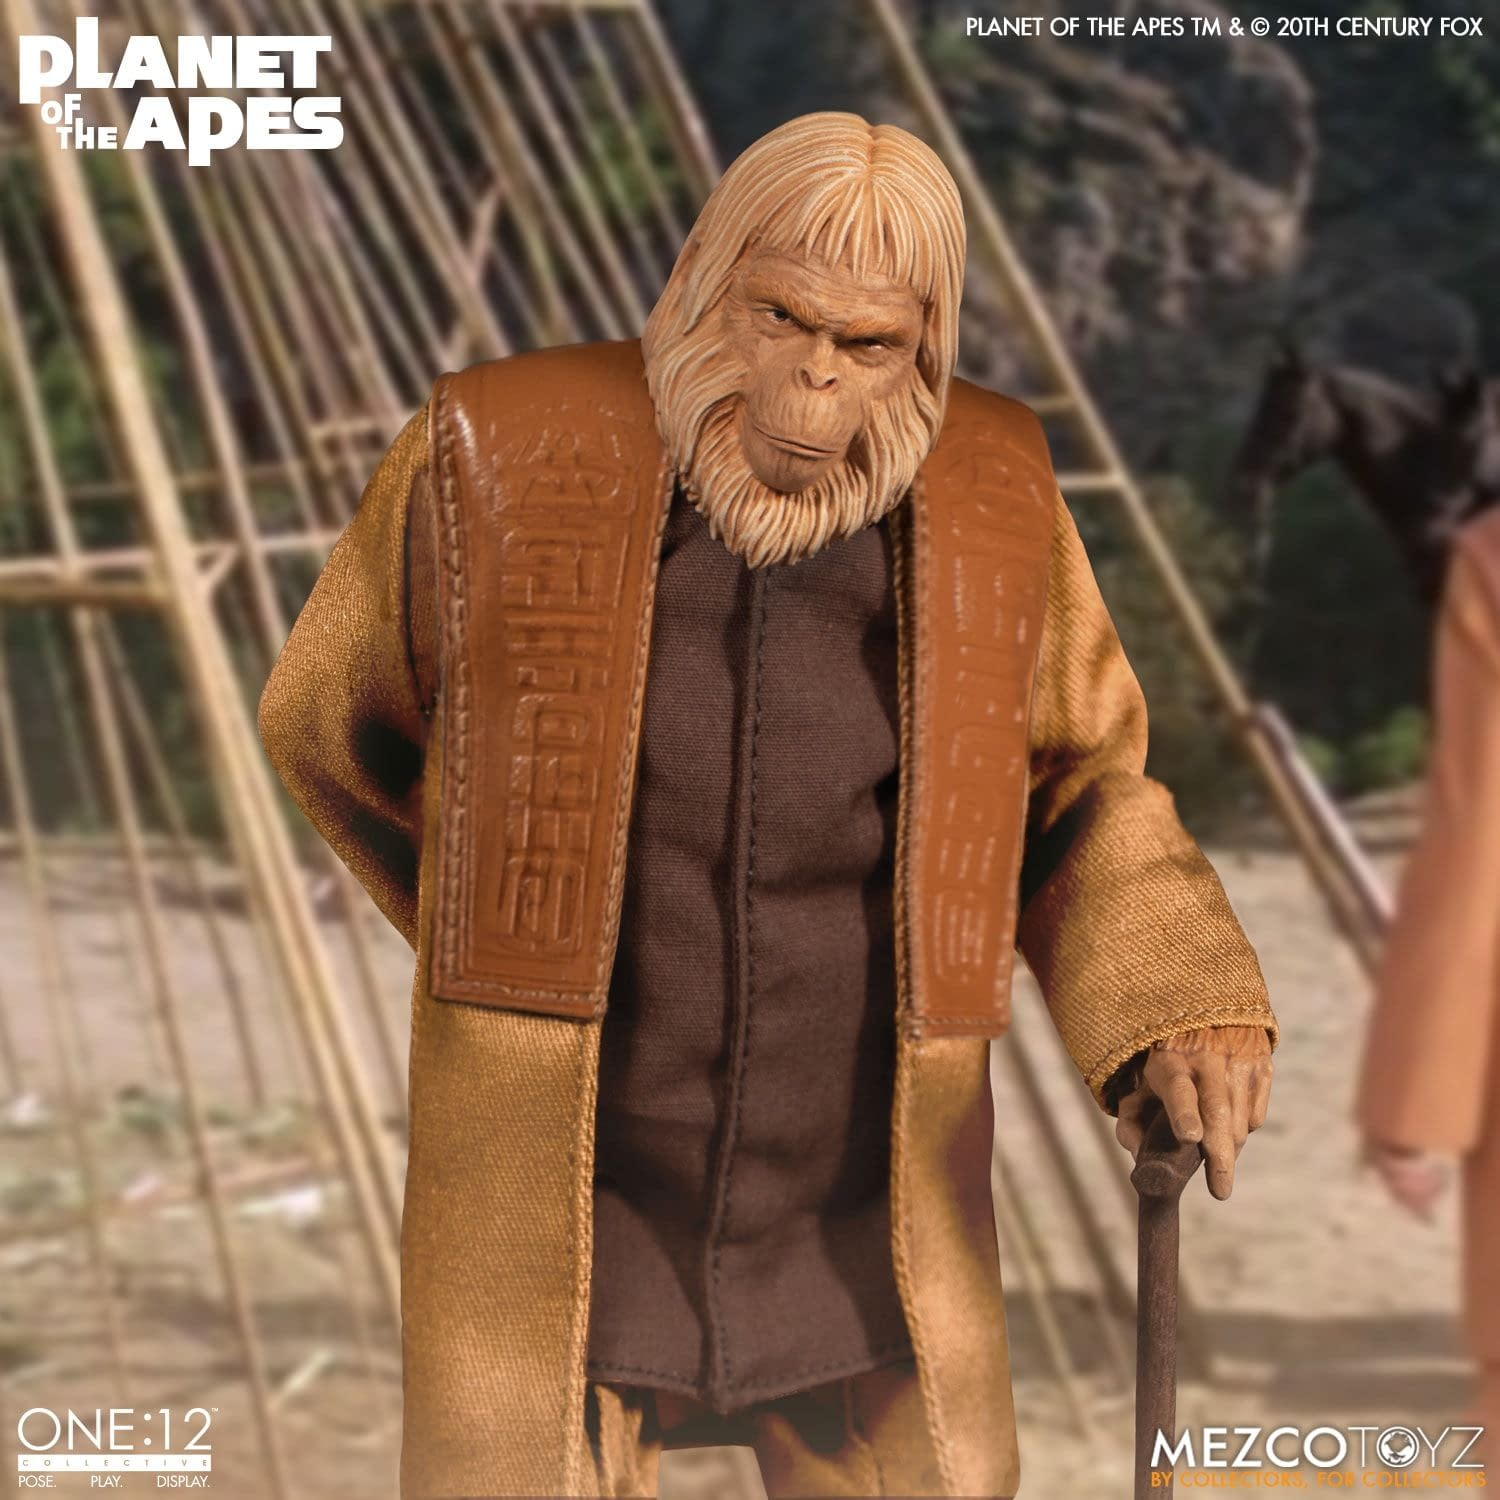 """Planet of the Apes"" (1968) Dr. Zaius Arrives at Mezco Toyz"